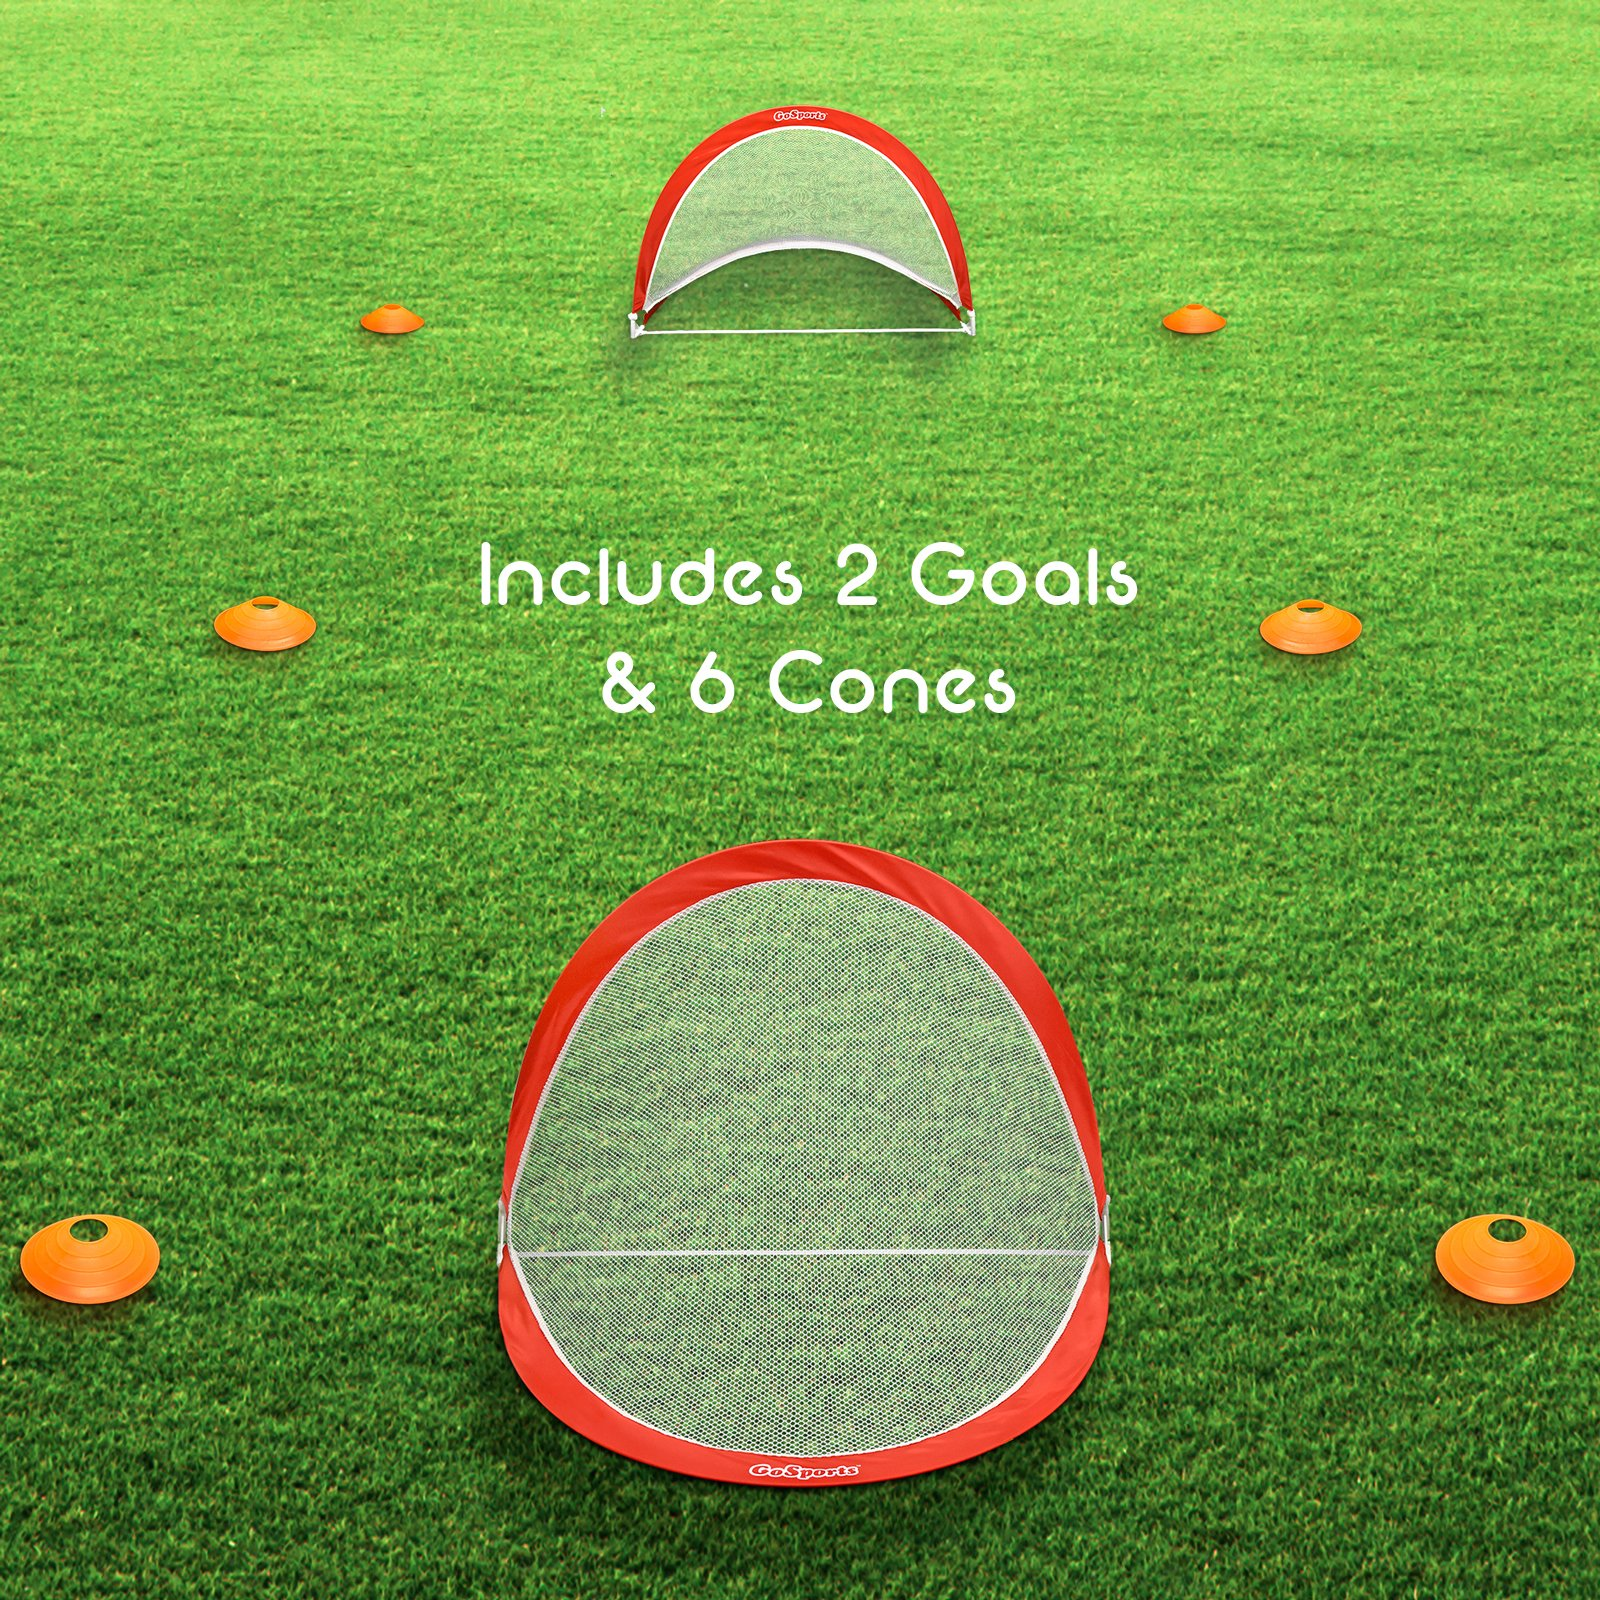 GoSports Portable Pop-Up Soccer Goal (Set of 2), Red/White, 4' by GoSports (Image #7)